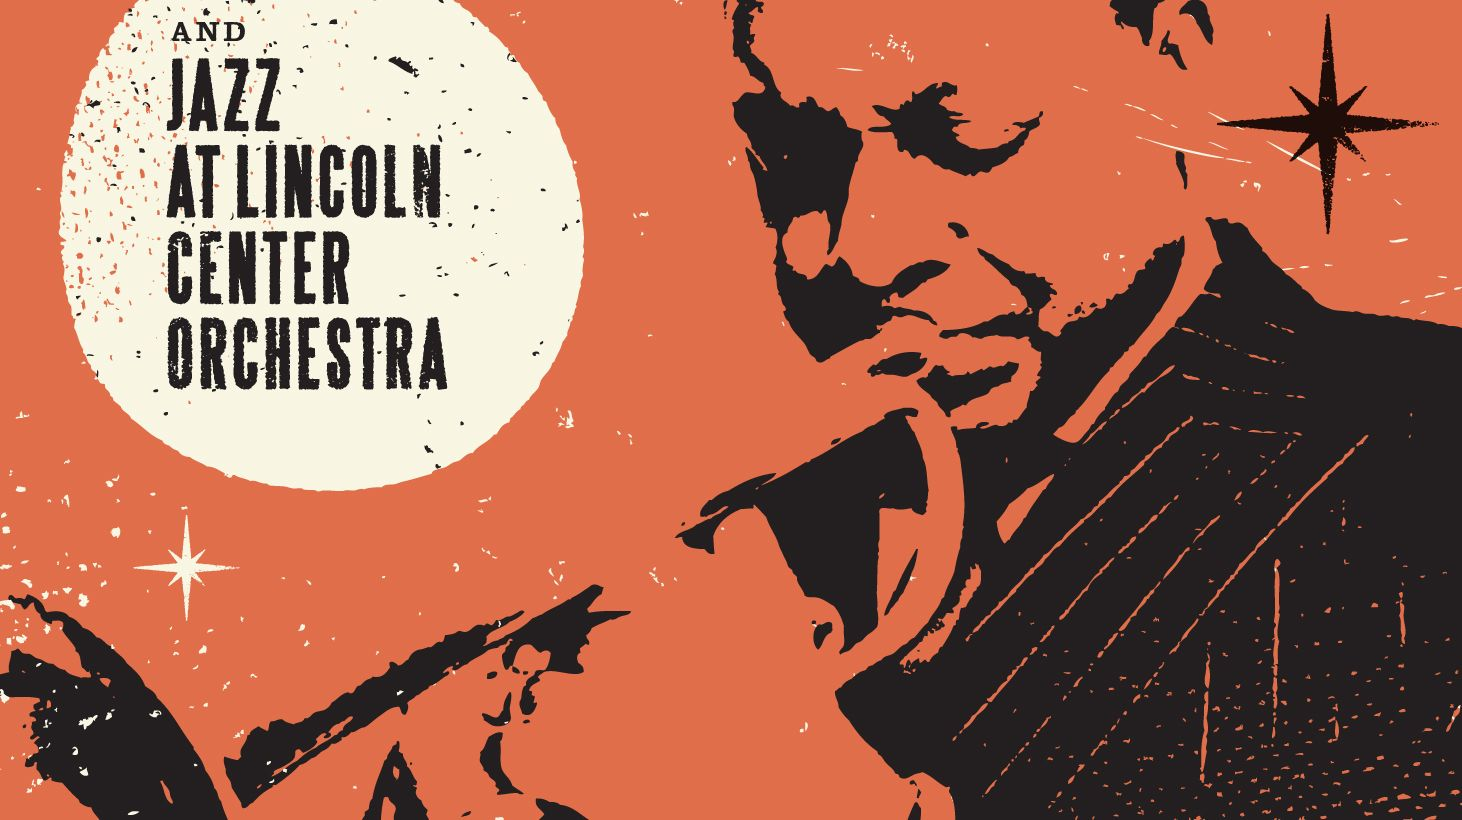 1000+ images about Vintage Jazz Posters on Pinterest | Jazz, Jazz ...